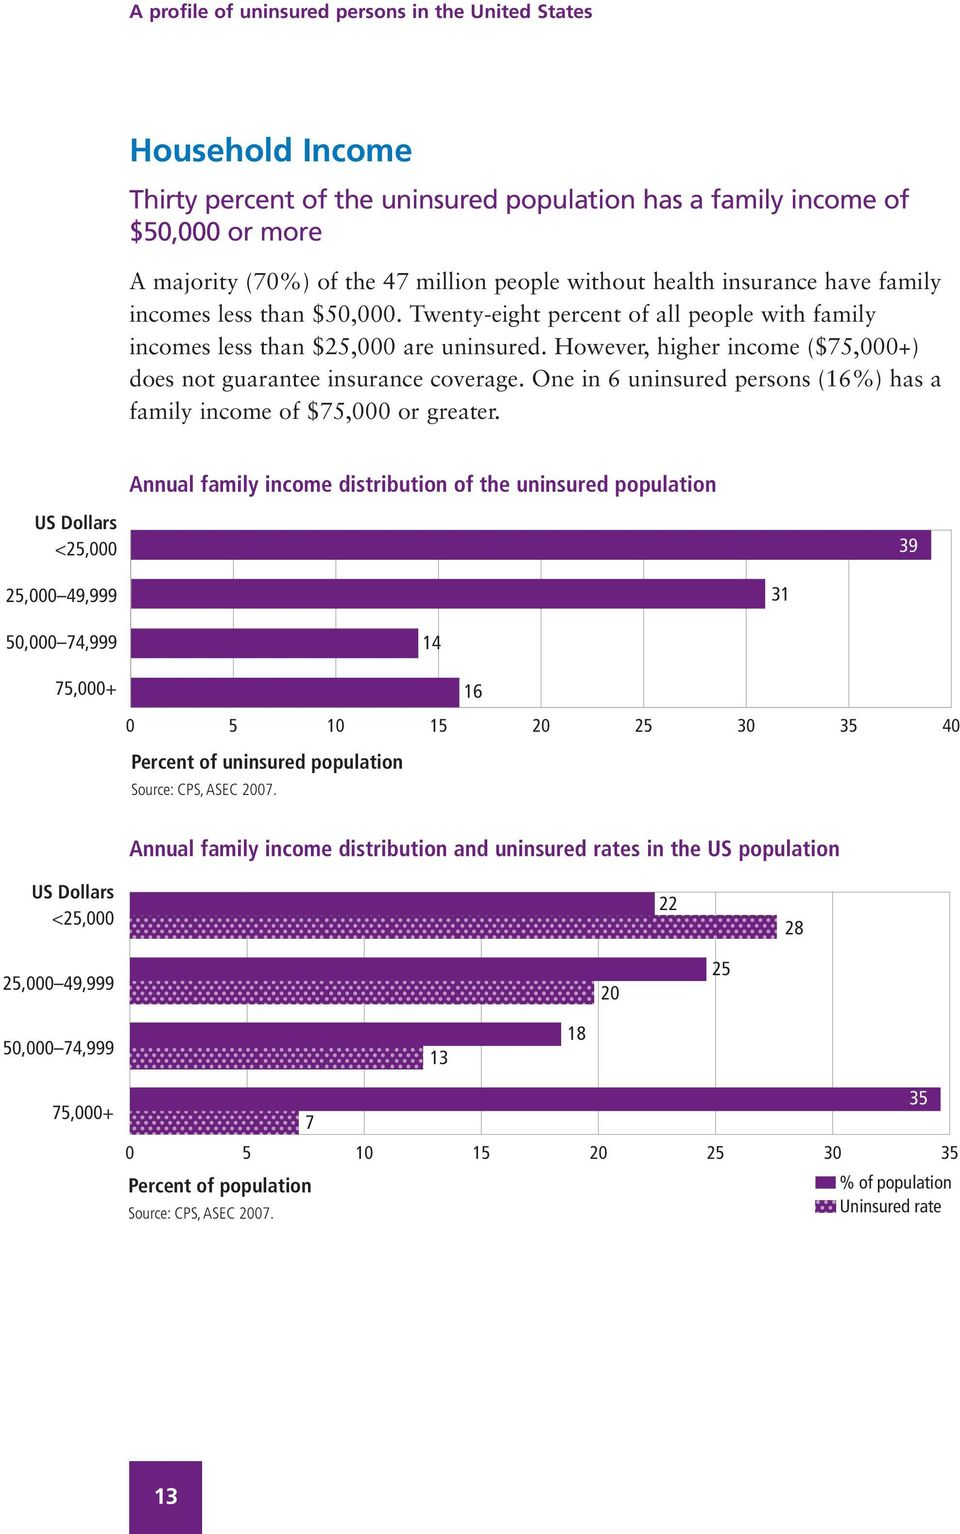 One in 6 uninsured persons (16%) has a family income of $75,000 or greater.